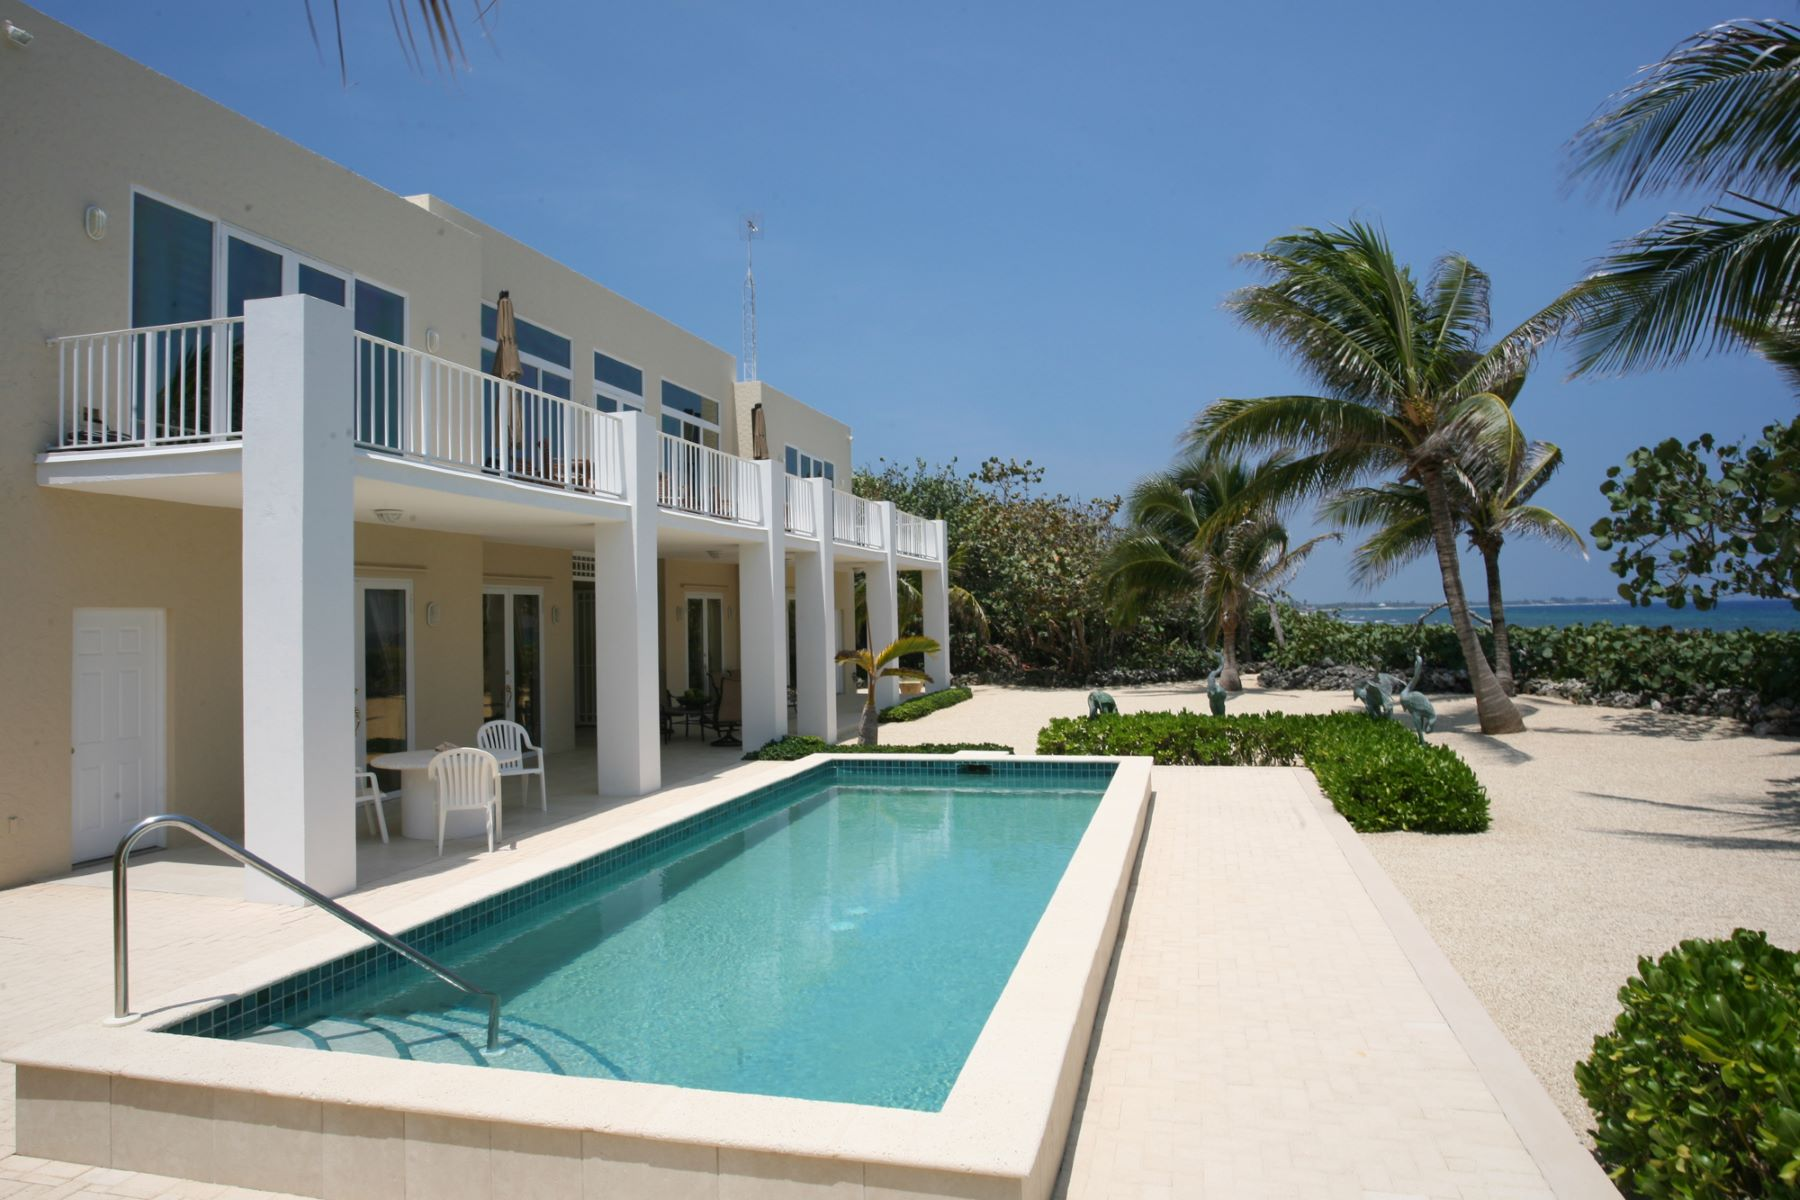 Single Family Home for Sale at Villa Caymanas North Side, Cayman Islands